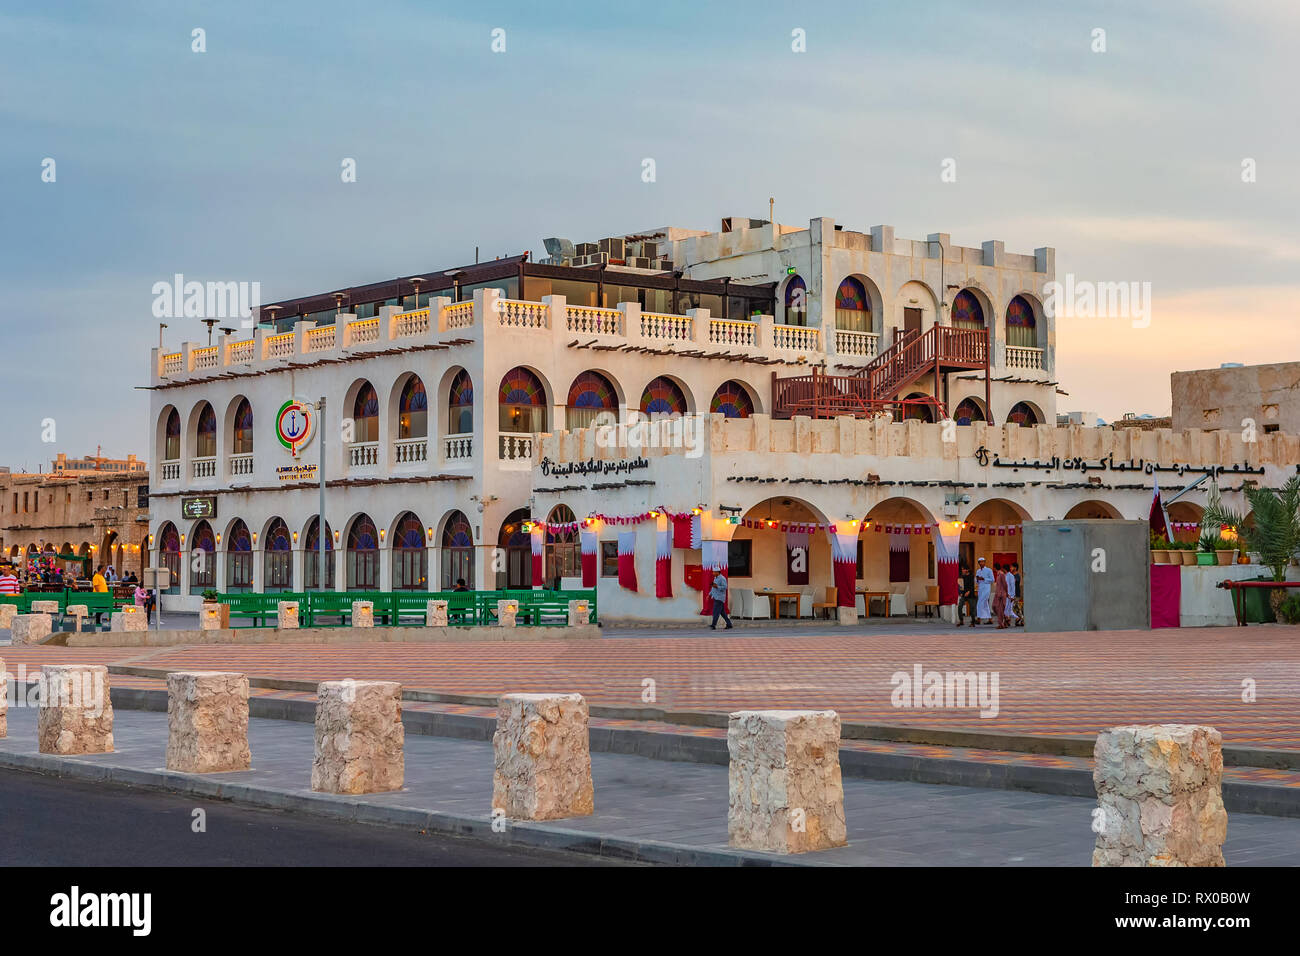 Souq Waqif is a souq in Doha, in the state of Qatar  The souq is